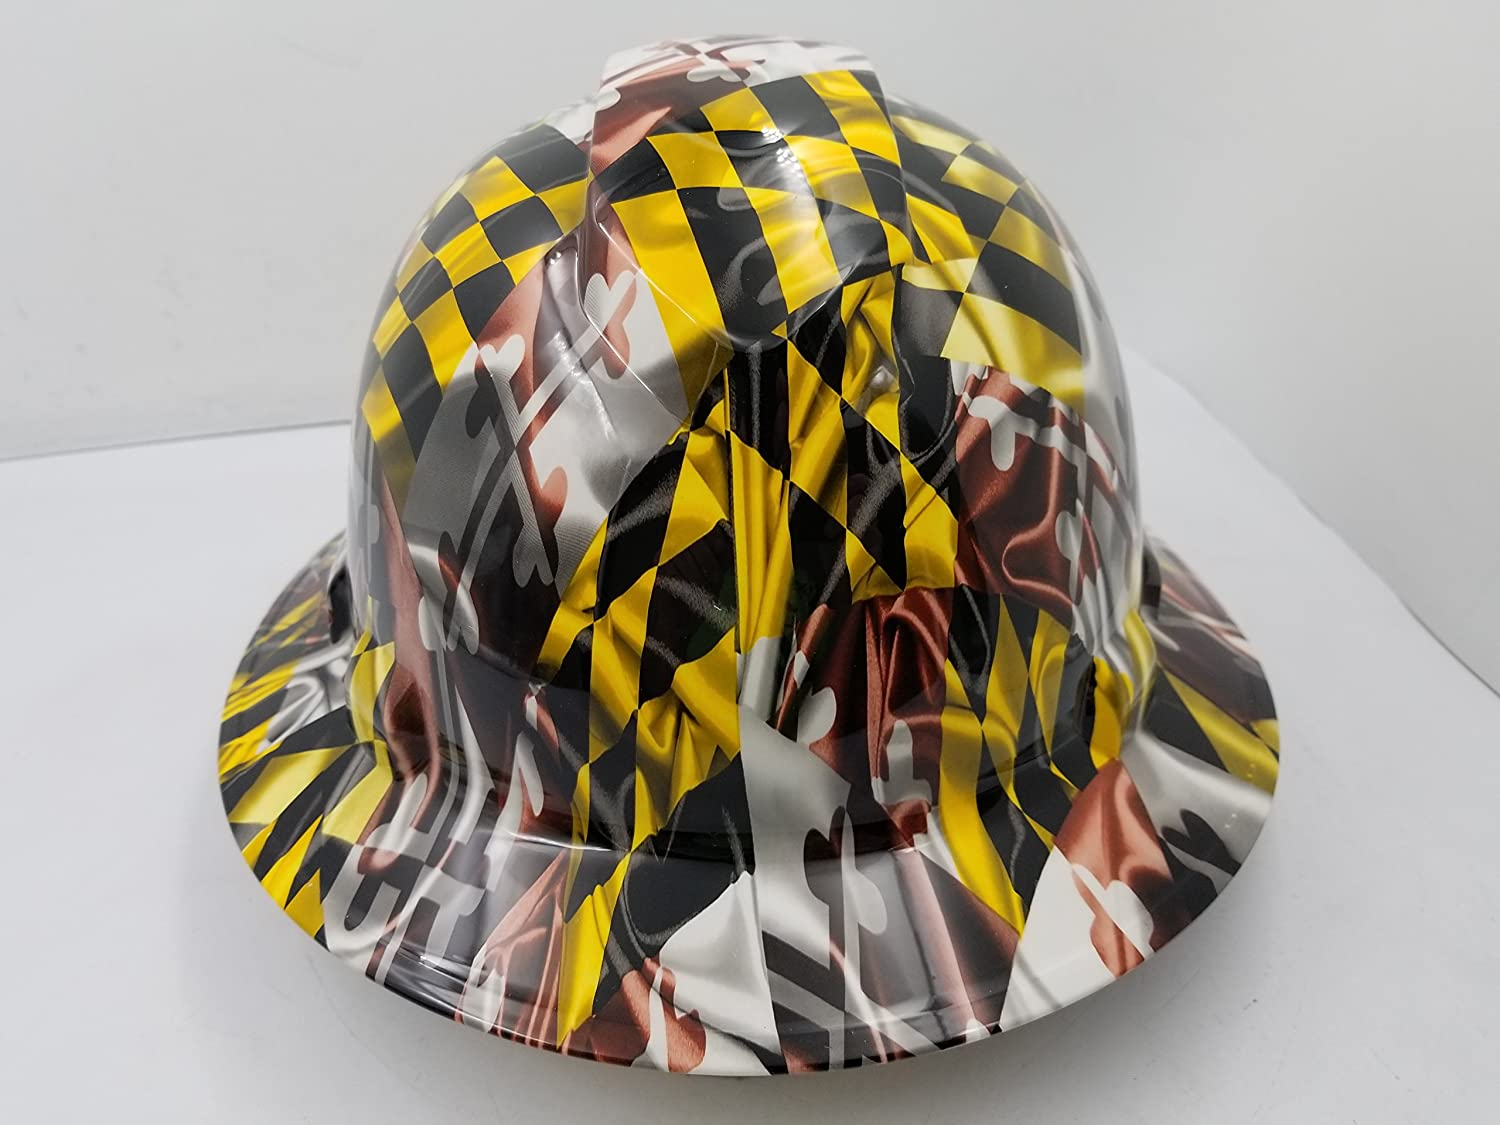 Wet works imaging customized pyramex full brim maryland state flag hard hat with ratcheting suspension custom lids crazy sick construction ppe amazon com